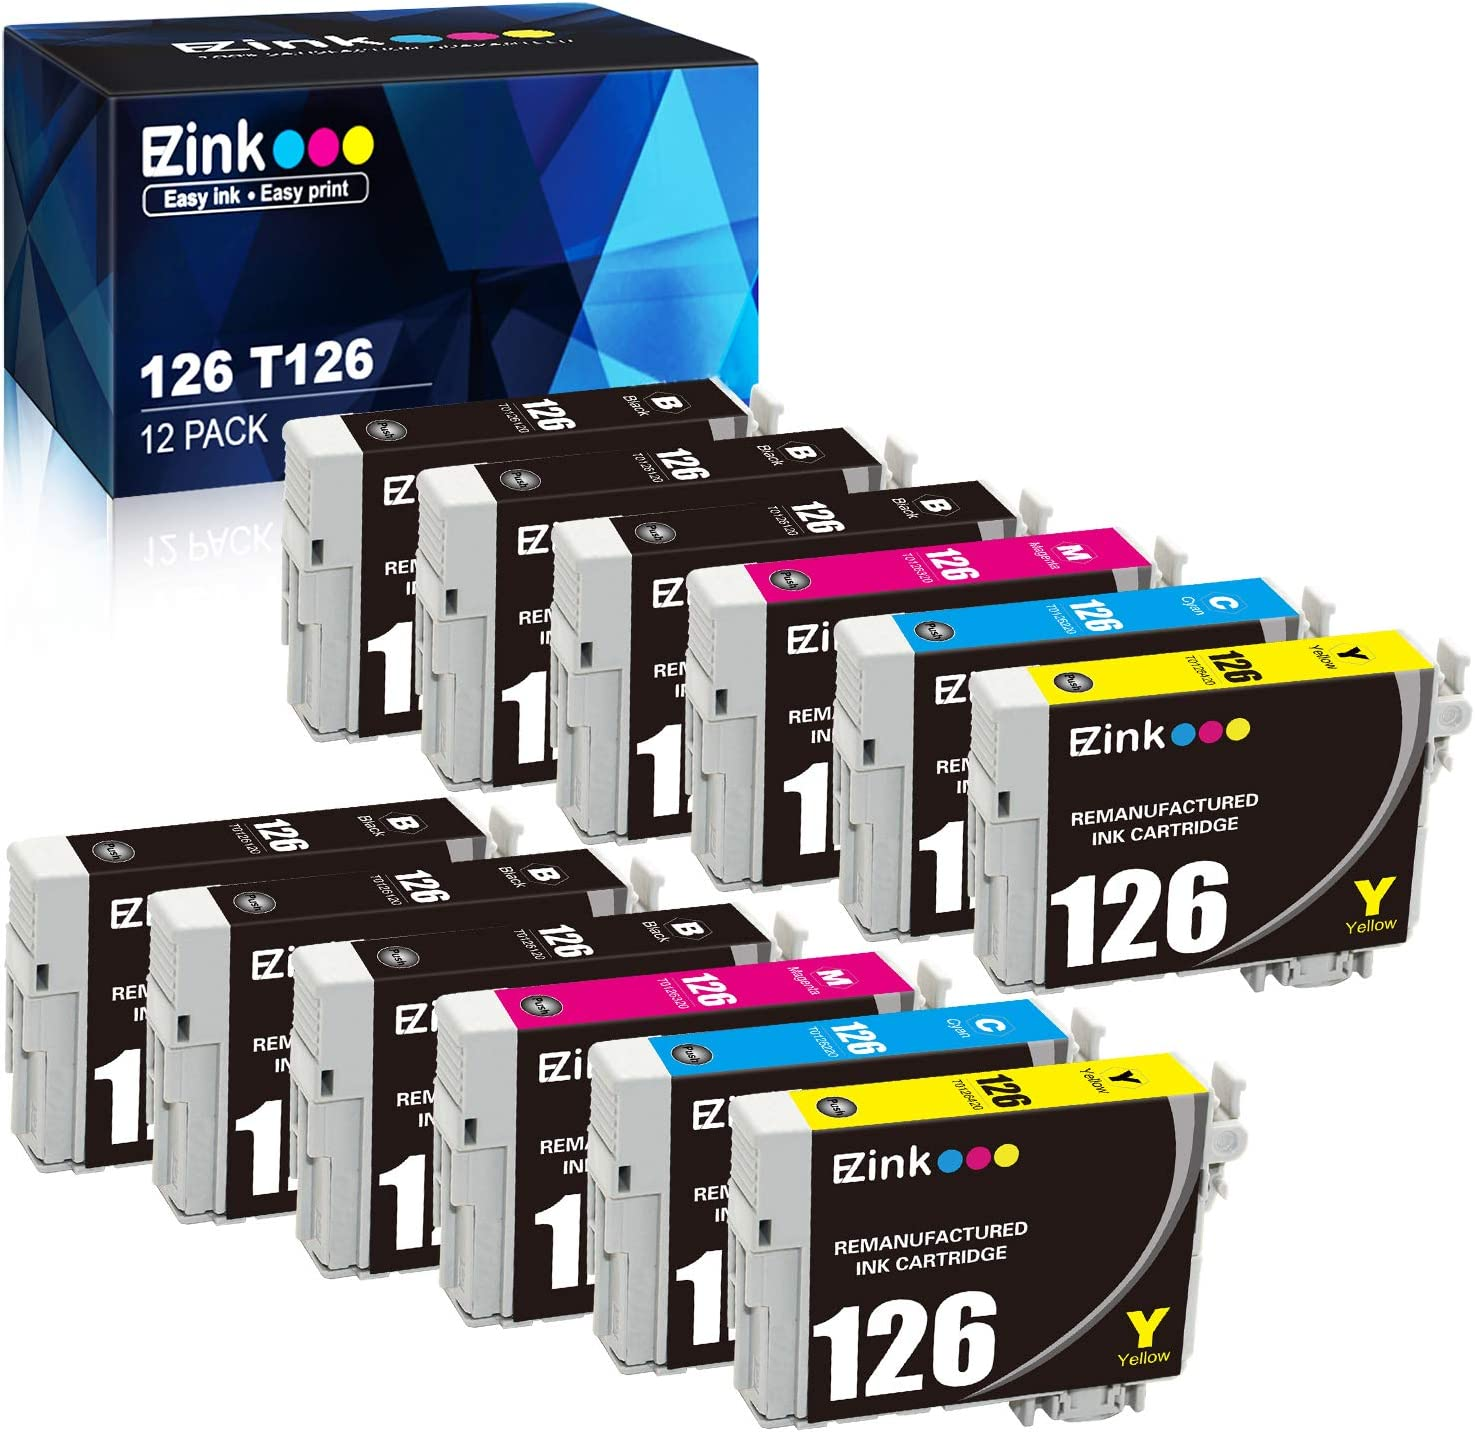 WORKFORCE 545 840 845 RETAIL BOX 4-PACK Epson GENUINE 126 Black /& Color Ink